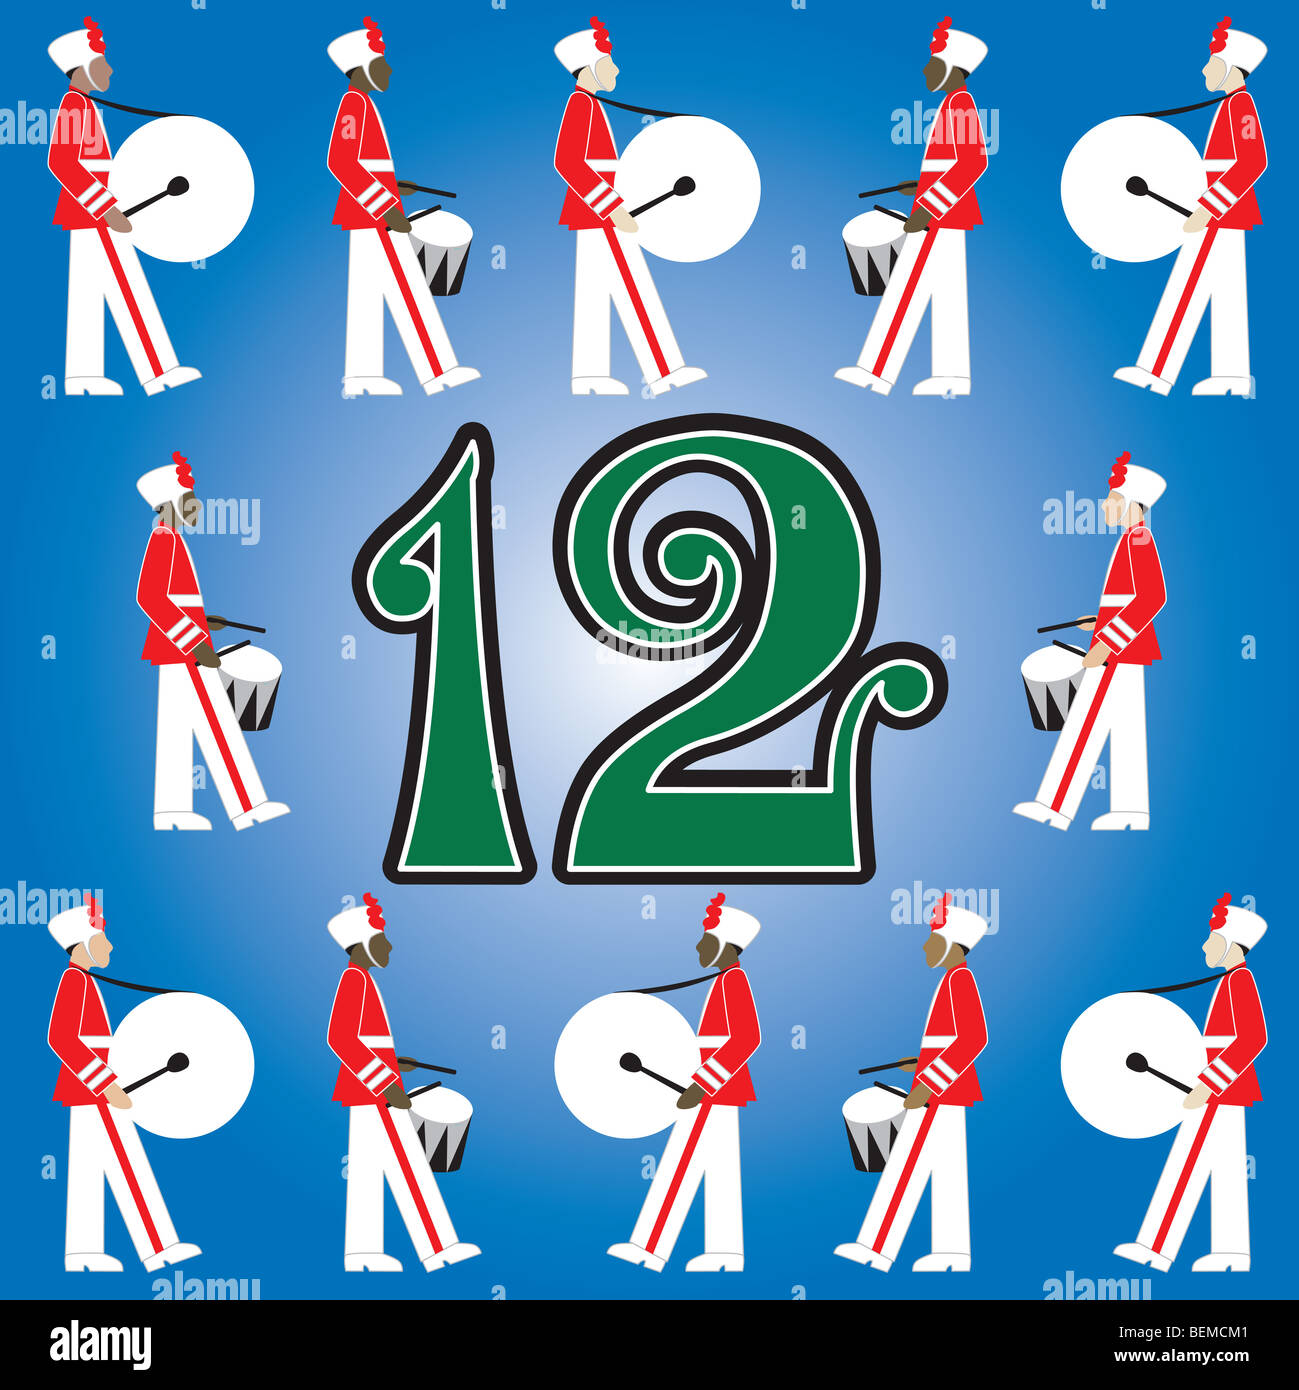 hight resolution of the 12 days of christmas vector illustration there is one for each day can be used as an educational flash card for counting